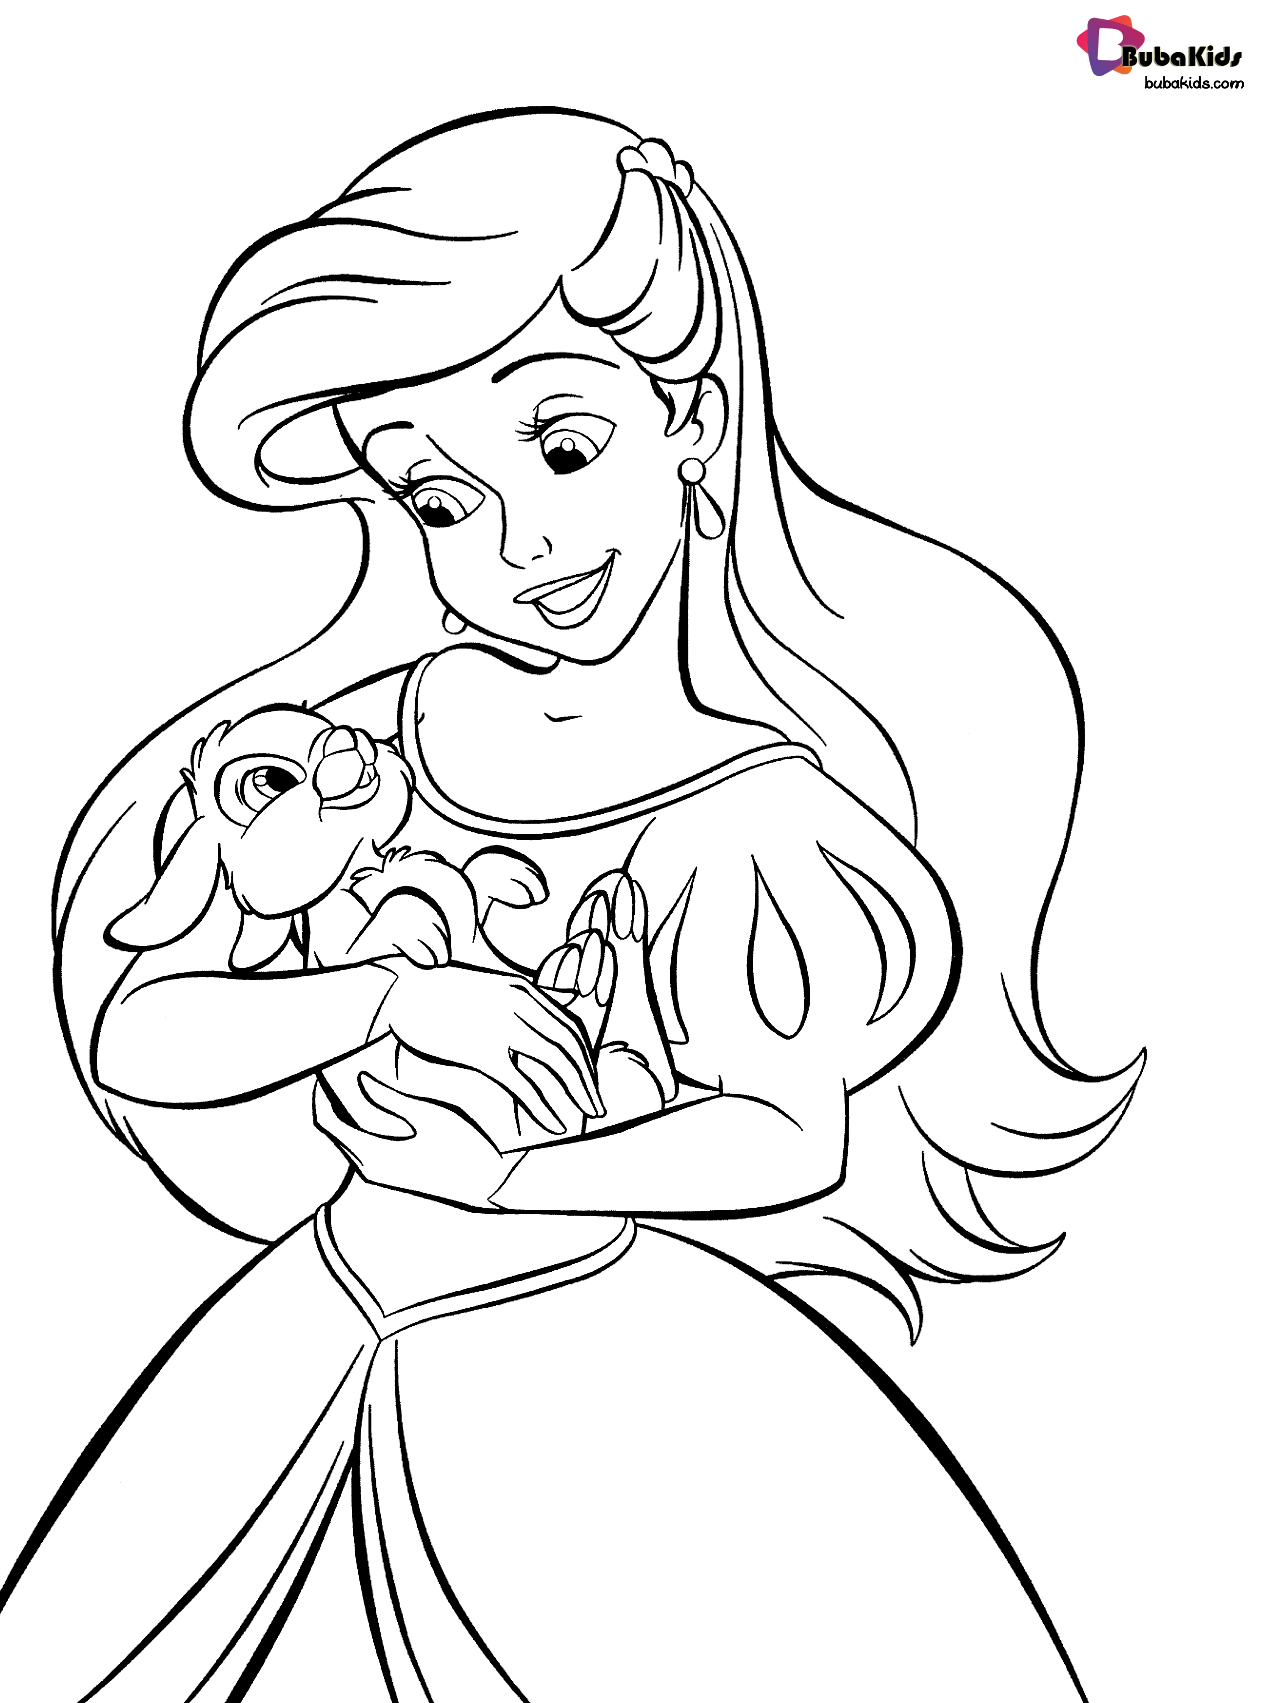 Princess Ariel Disney S Little Mermaid Coloring Page Collection Of Cartoon Colo Disney Princess Coloring Pages Ariel Coloring Pages Free Disney Coloring Pages